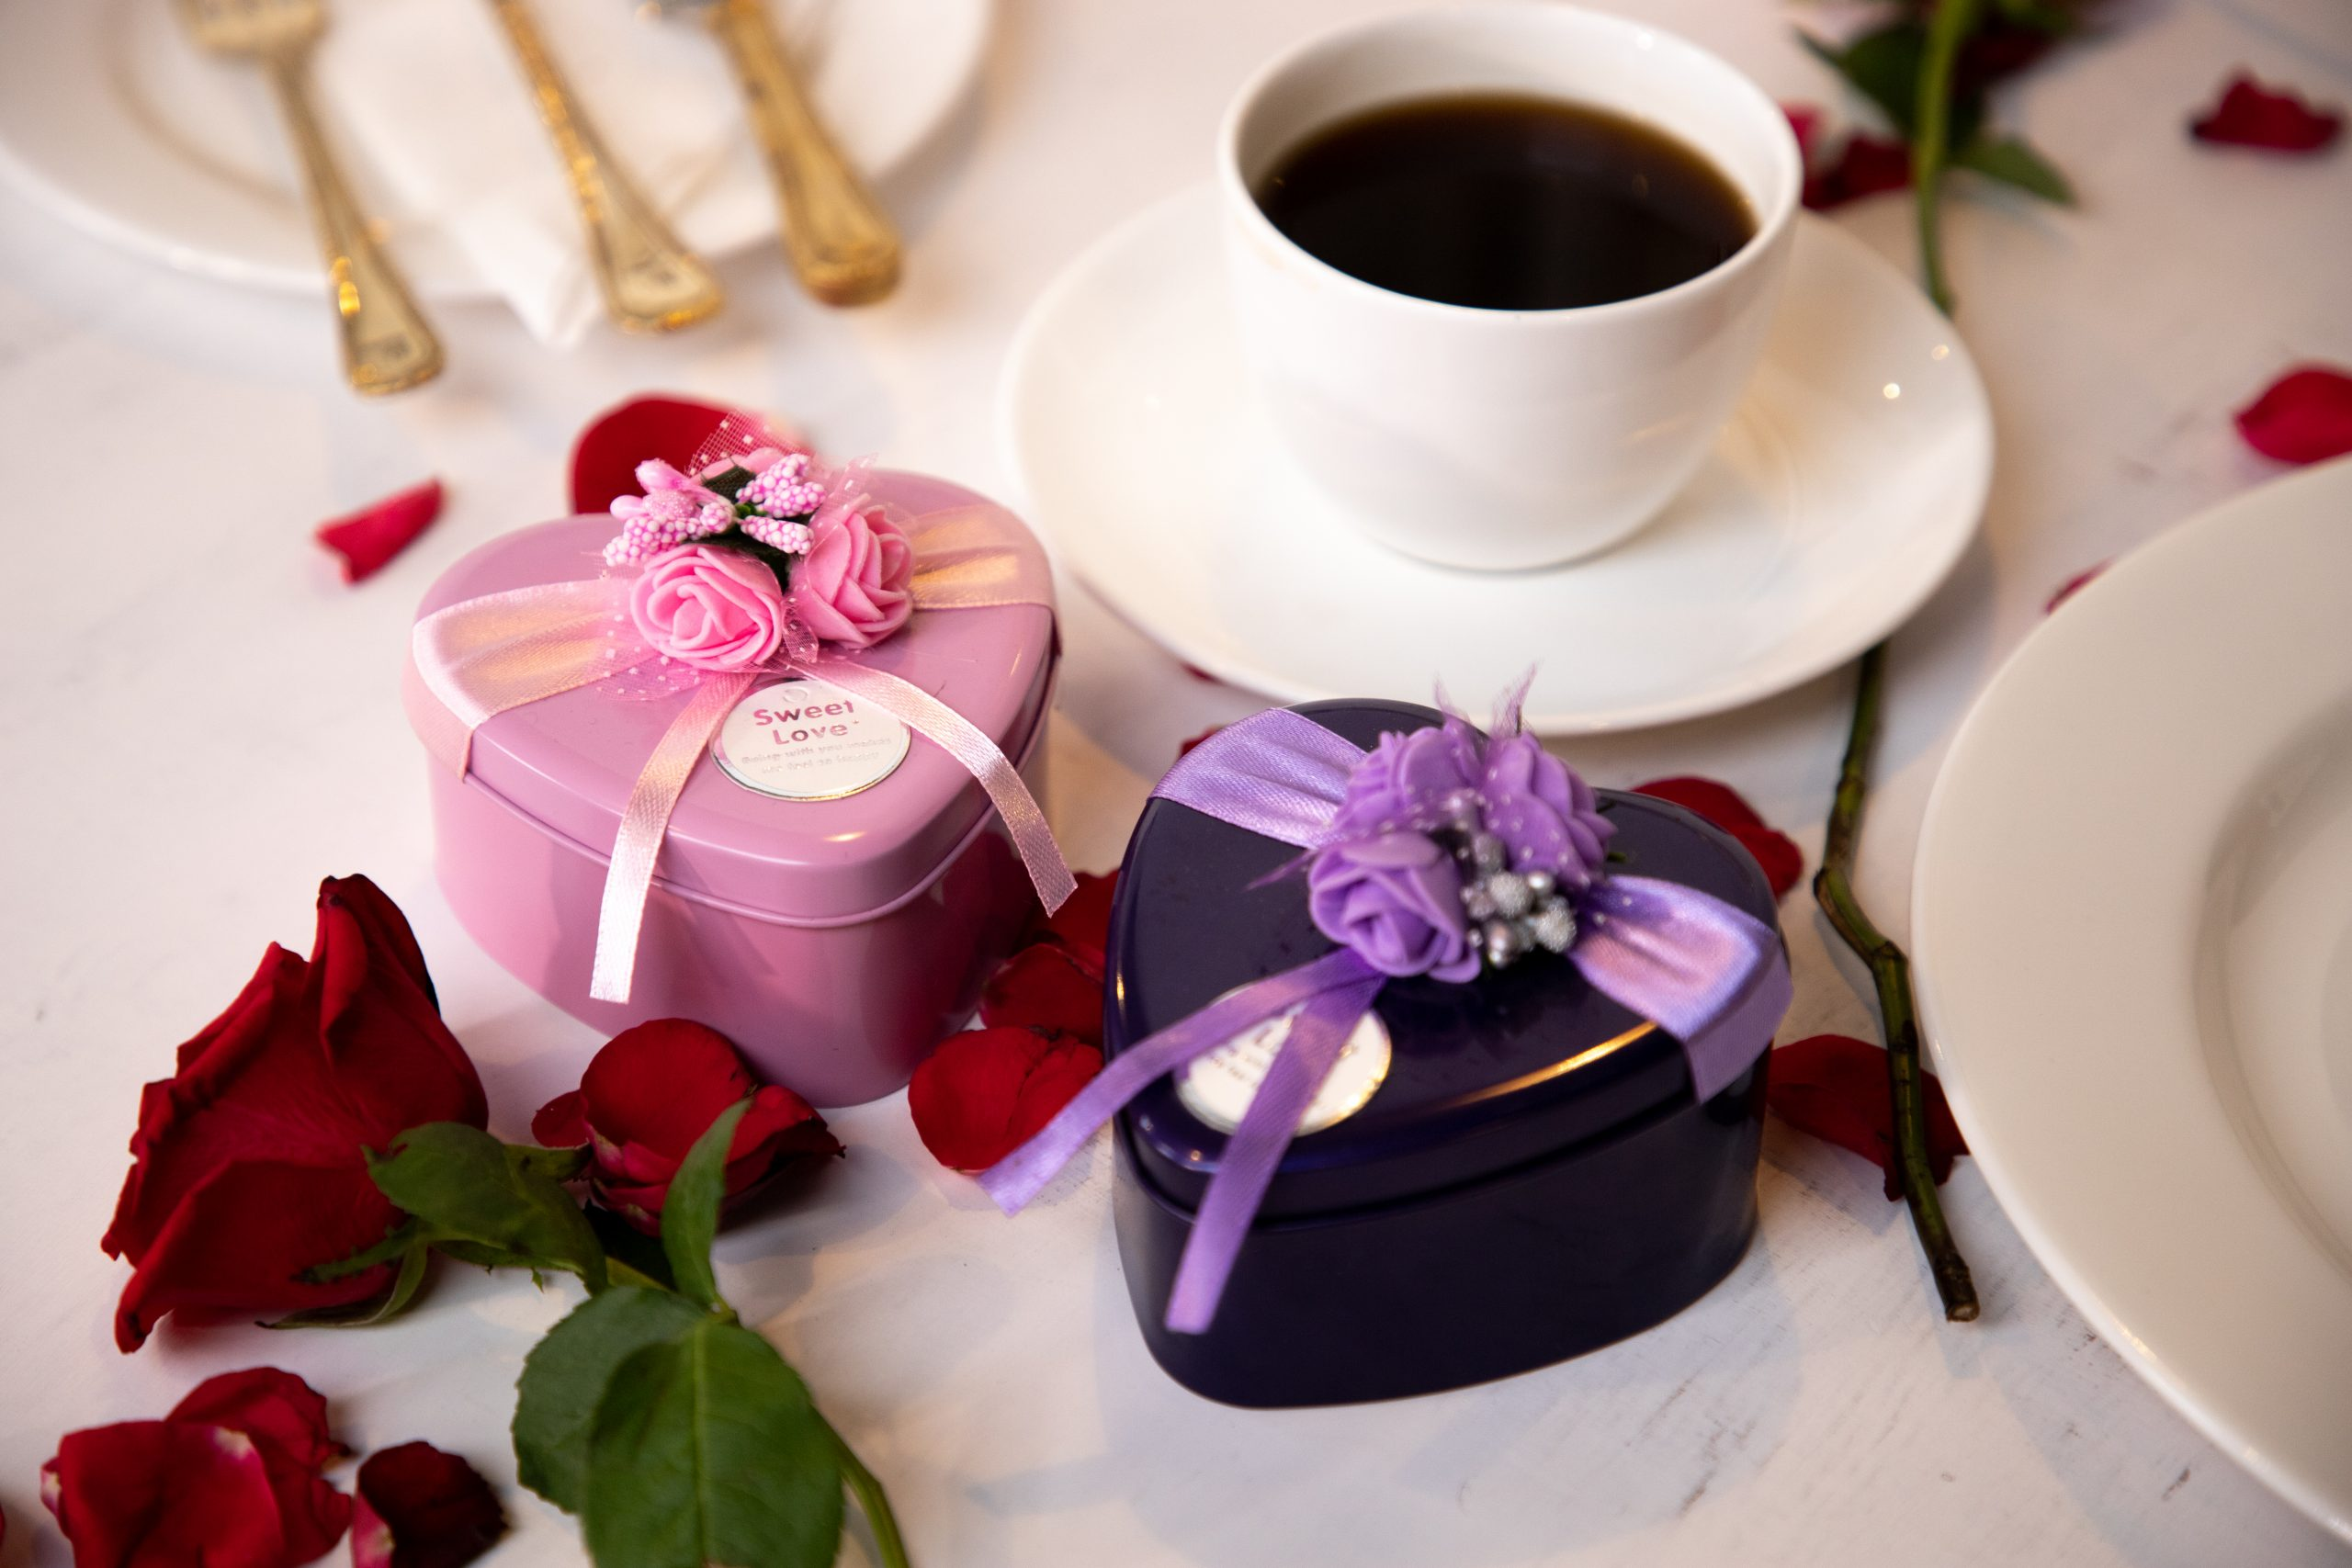 Cute gift boxes